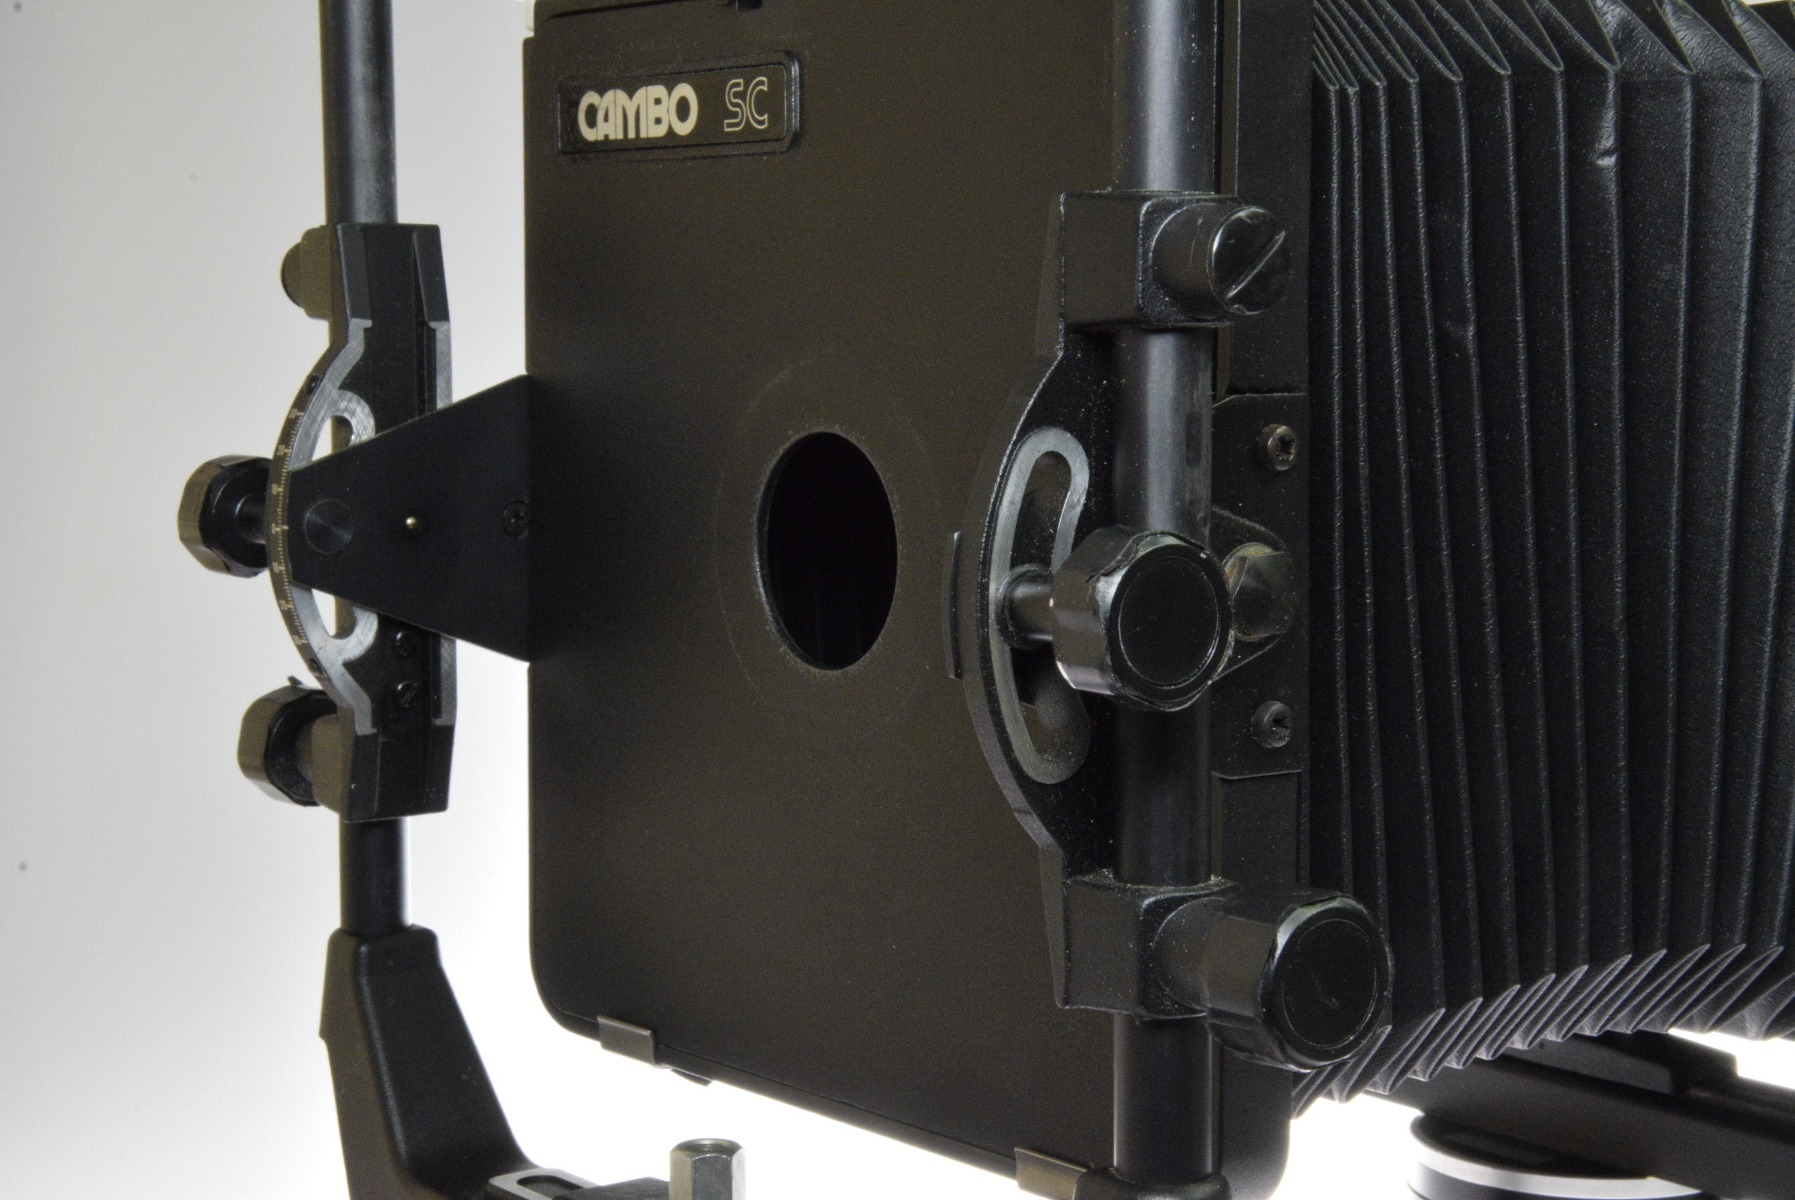 Used Cambo 5x4 Monorail Large Format Camera